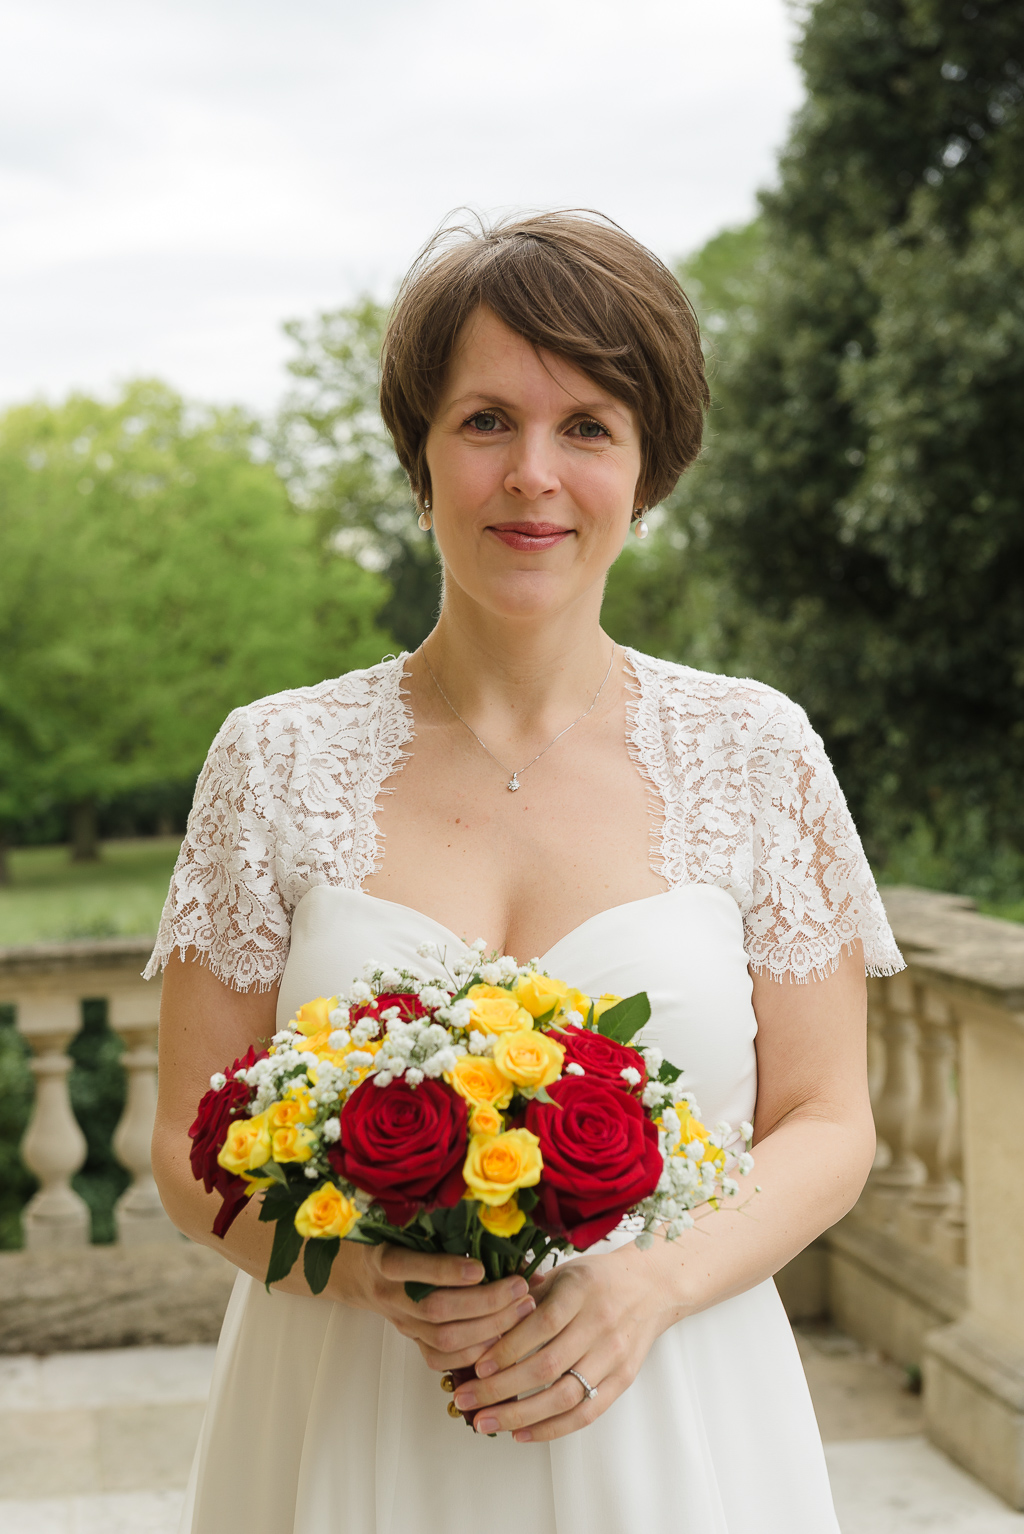 Bridal Portrait at Danson House Bexley | London Wedding Photographer | Oakhouse Photography